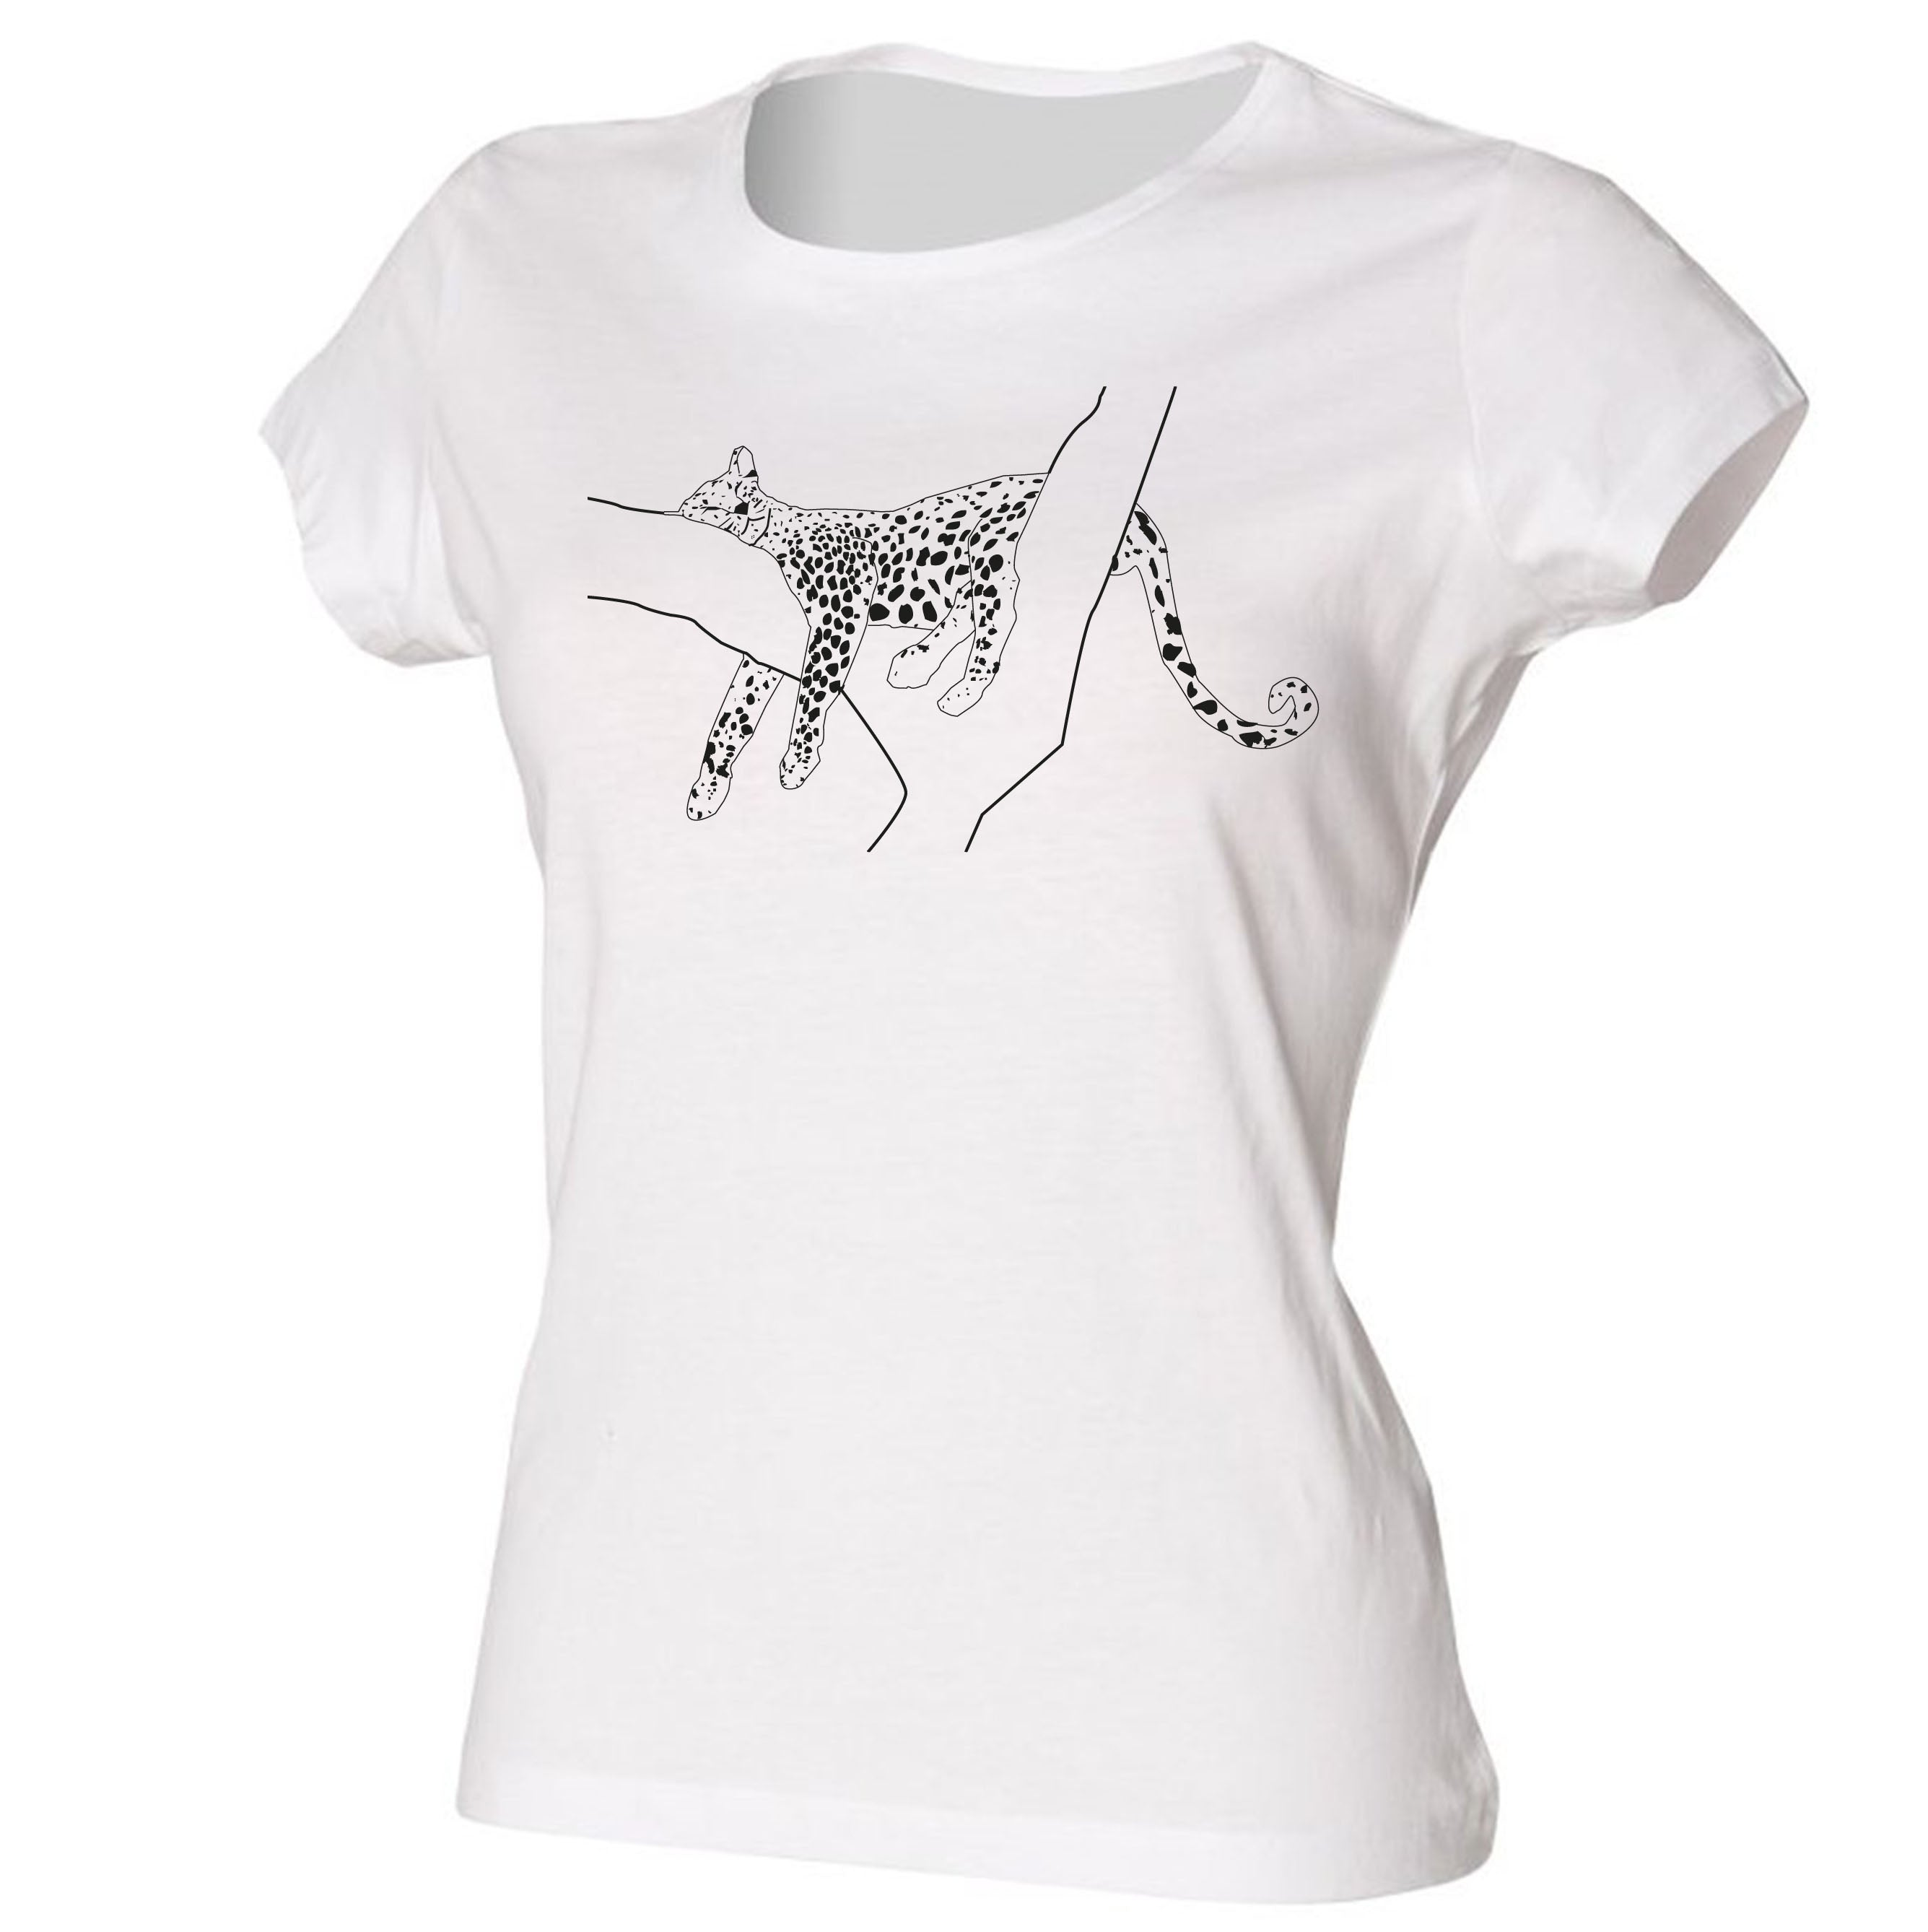 Leopard women t-shirt